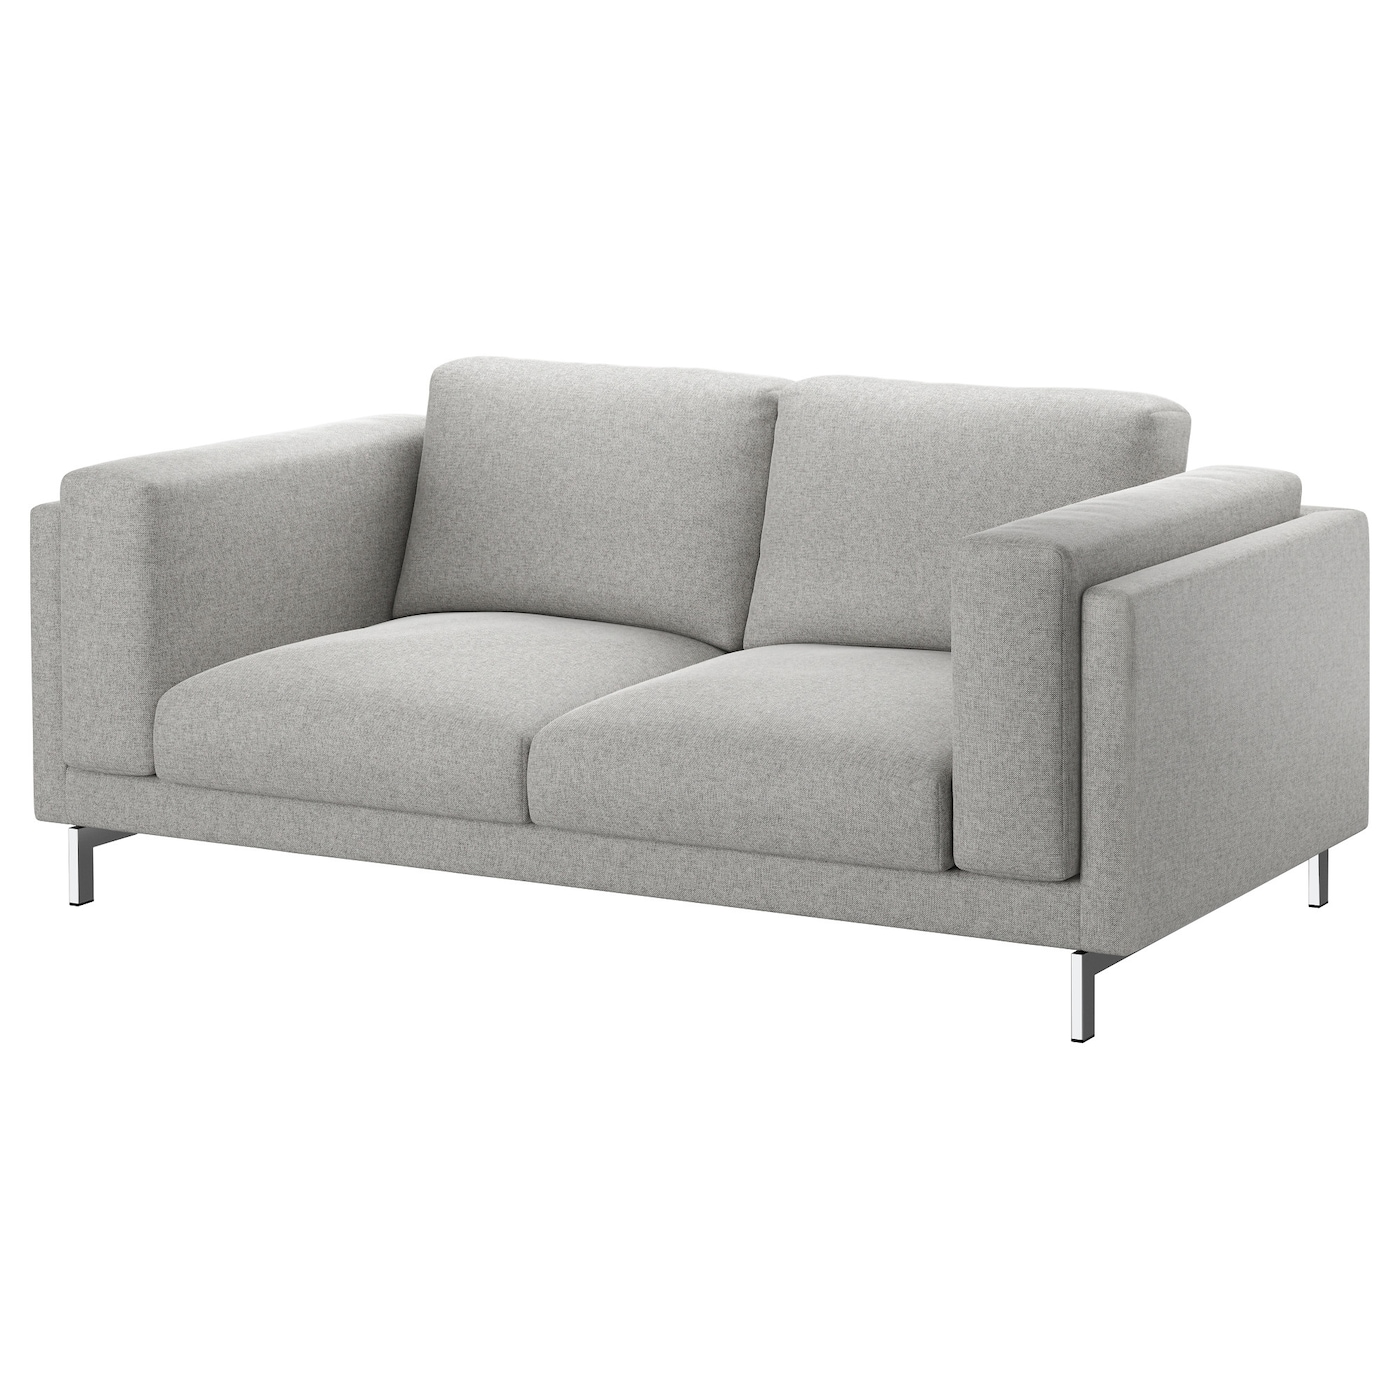 2er sofa ikea  NOCKEBY Two-seat sofa Tallmyra white/black/chrome-plated - IKEA